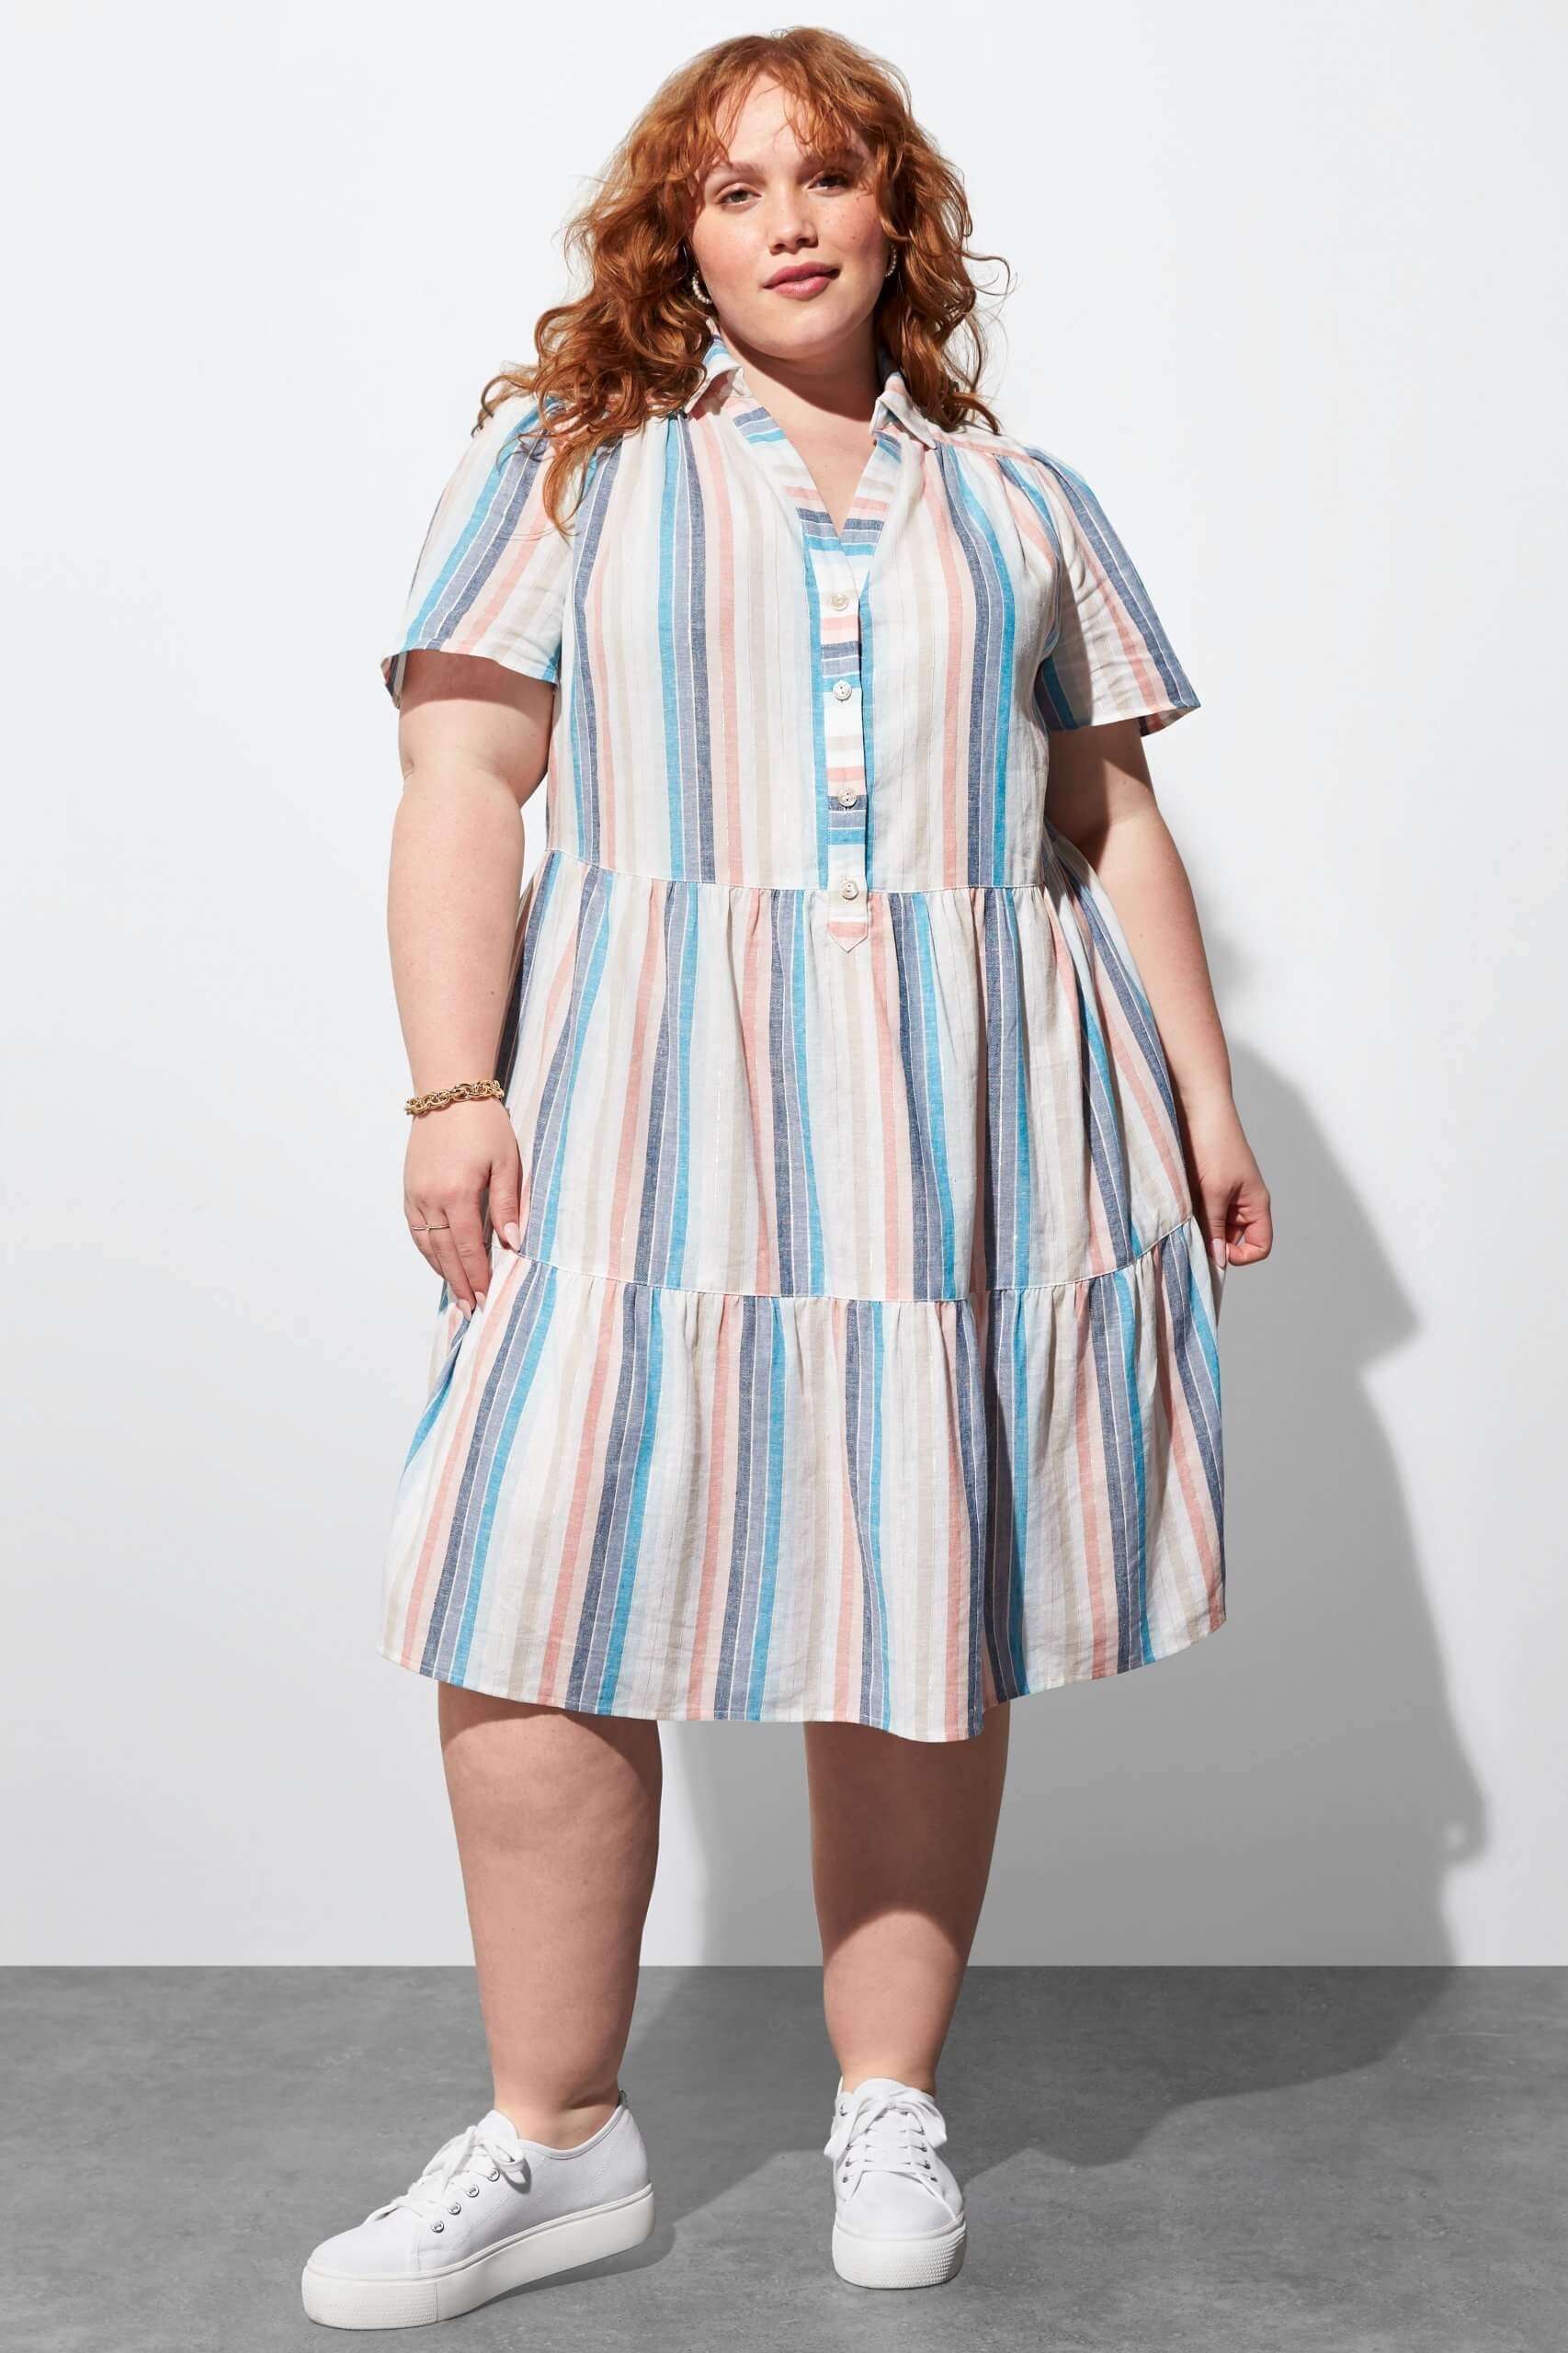 Stitch Fix Women's model wearing white, pink and blue striped shirt dress and white sneakers.